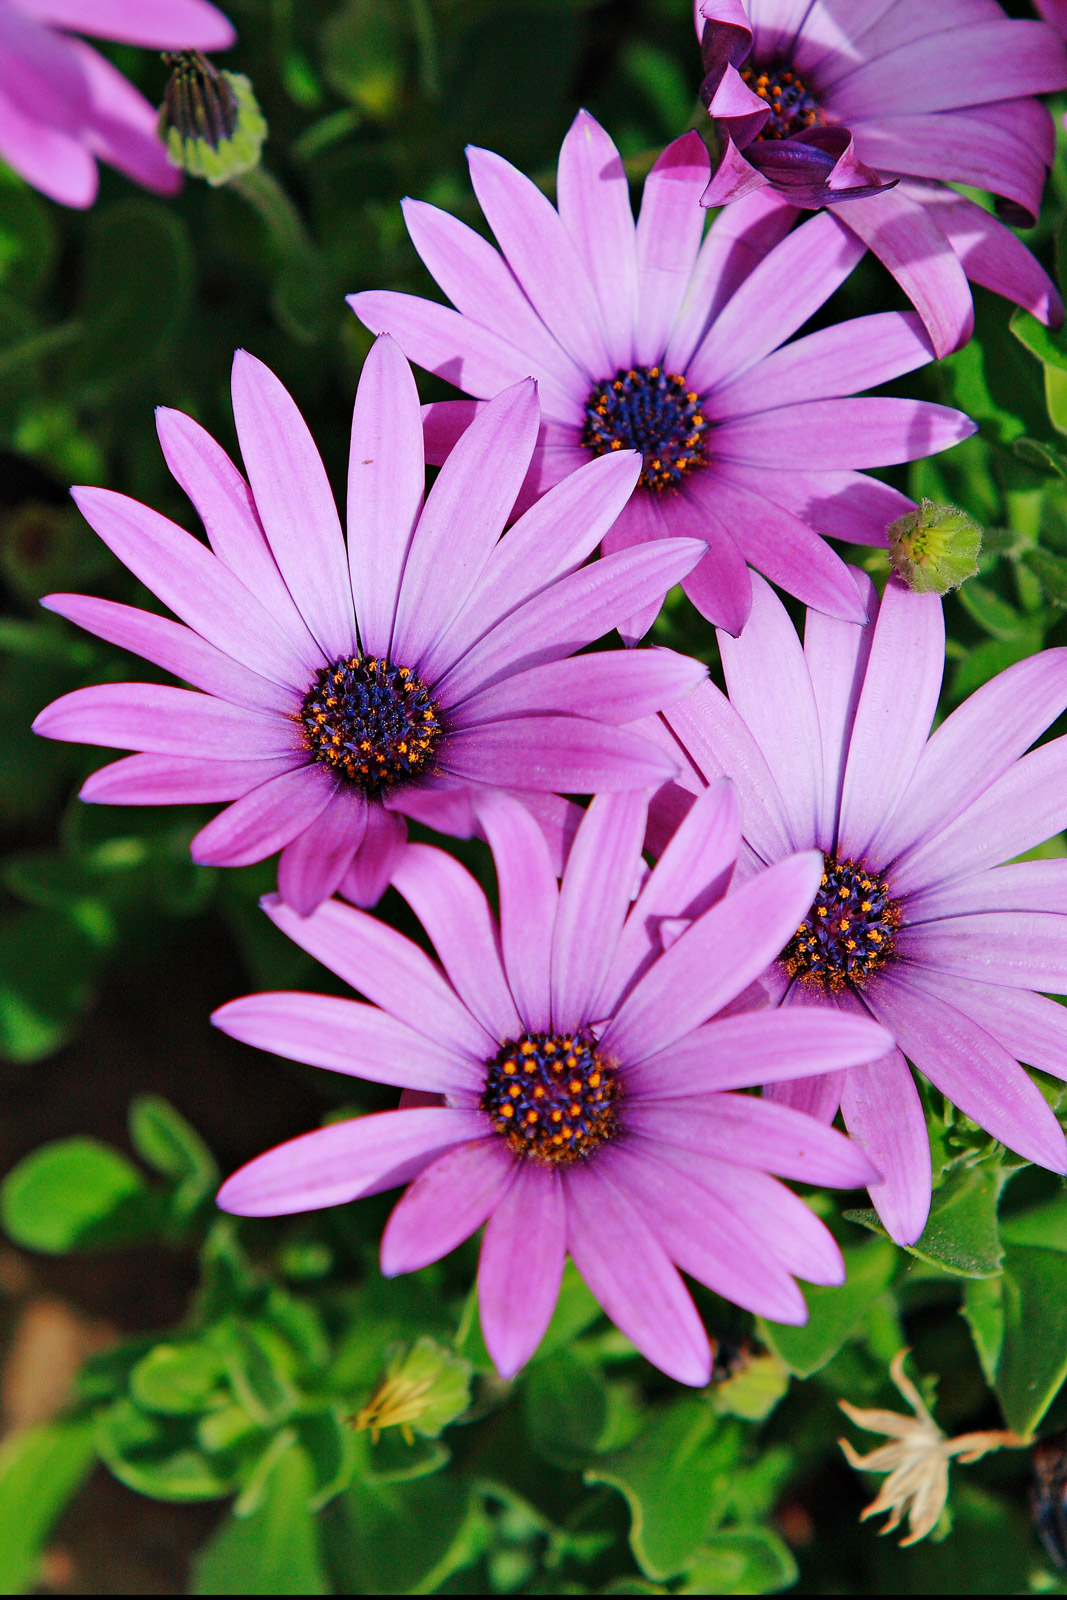 Looking for a flower similar to a black eyed susan but a different color